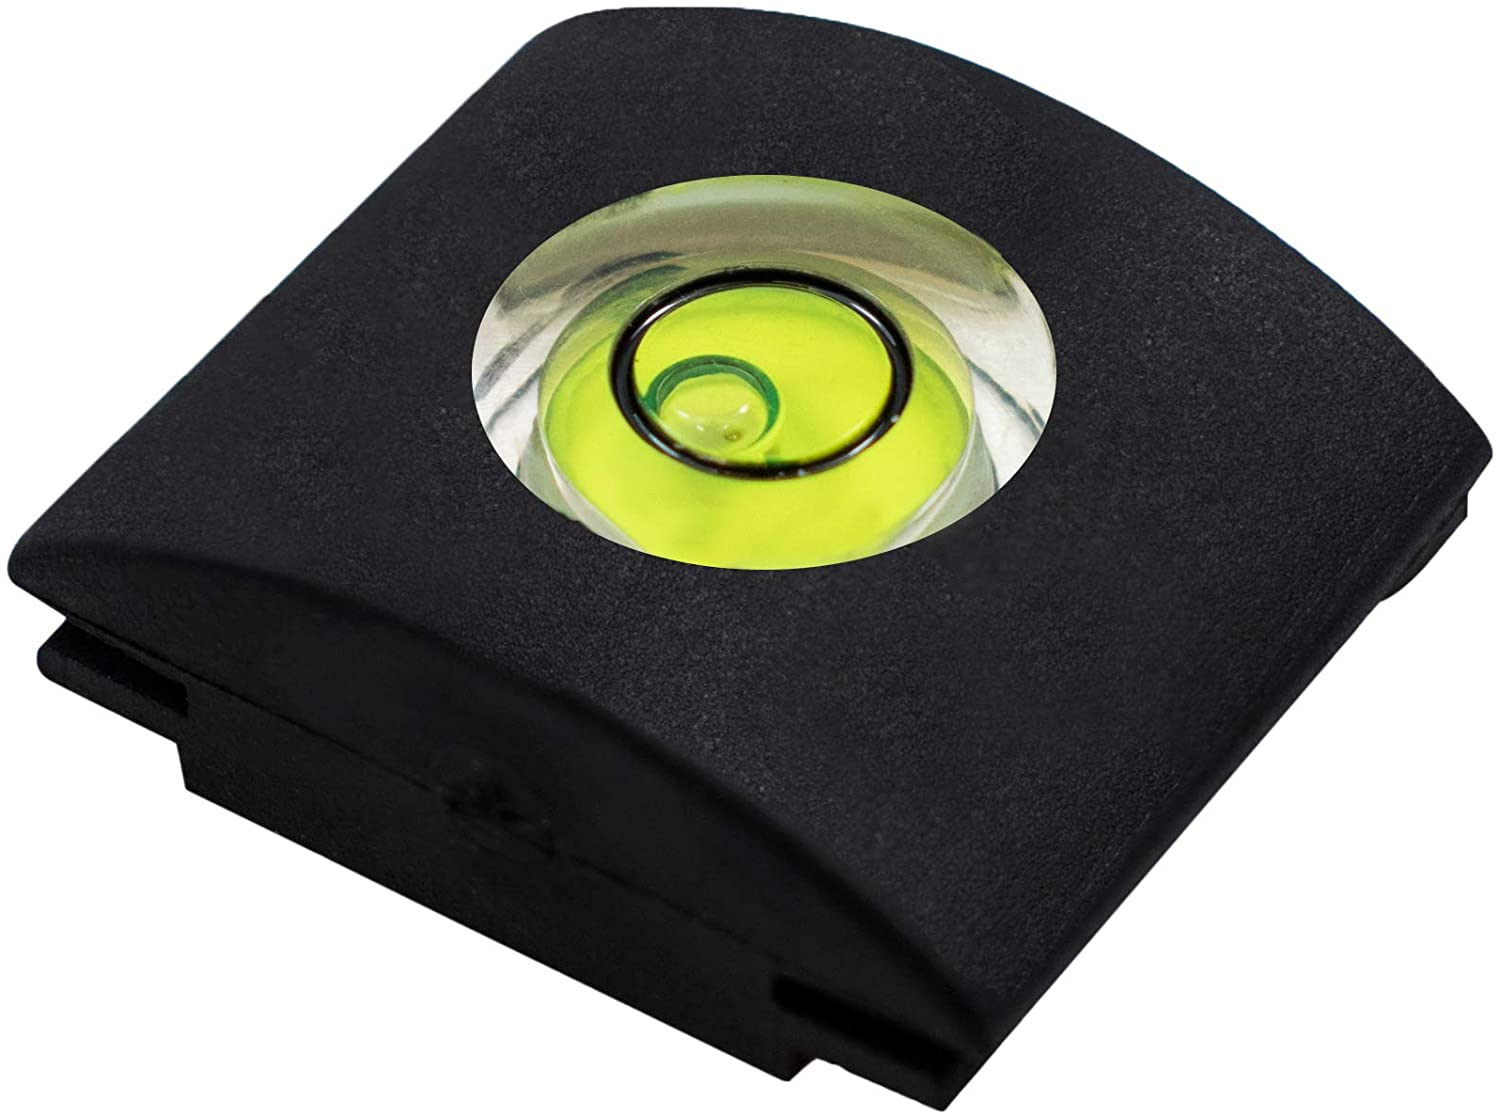 Universal Hot-shoe Cover for Camera Hot Shoe Socket with Bubble Spirit Level